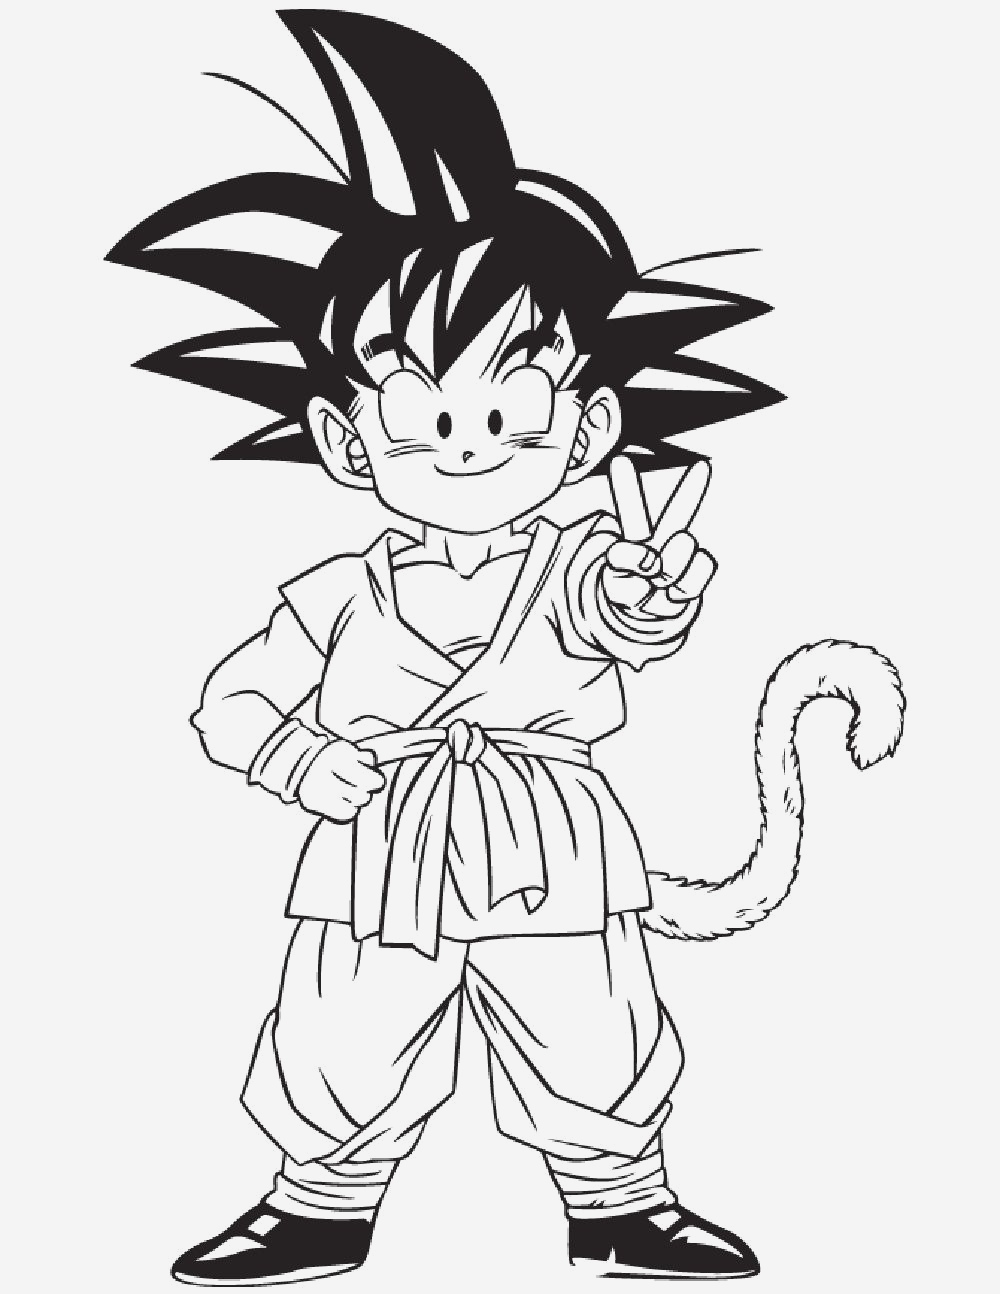 Coloriage Dragon Ball Z Sangoku Coloriages Gratuits